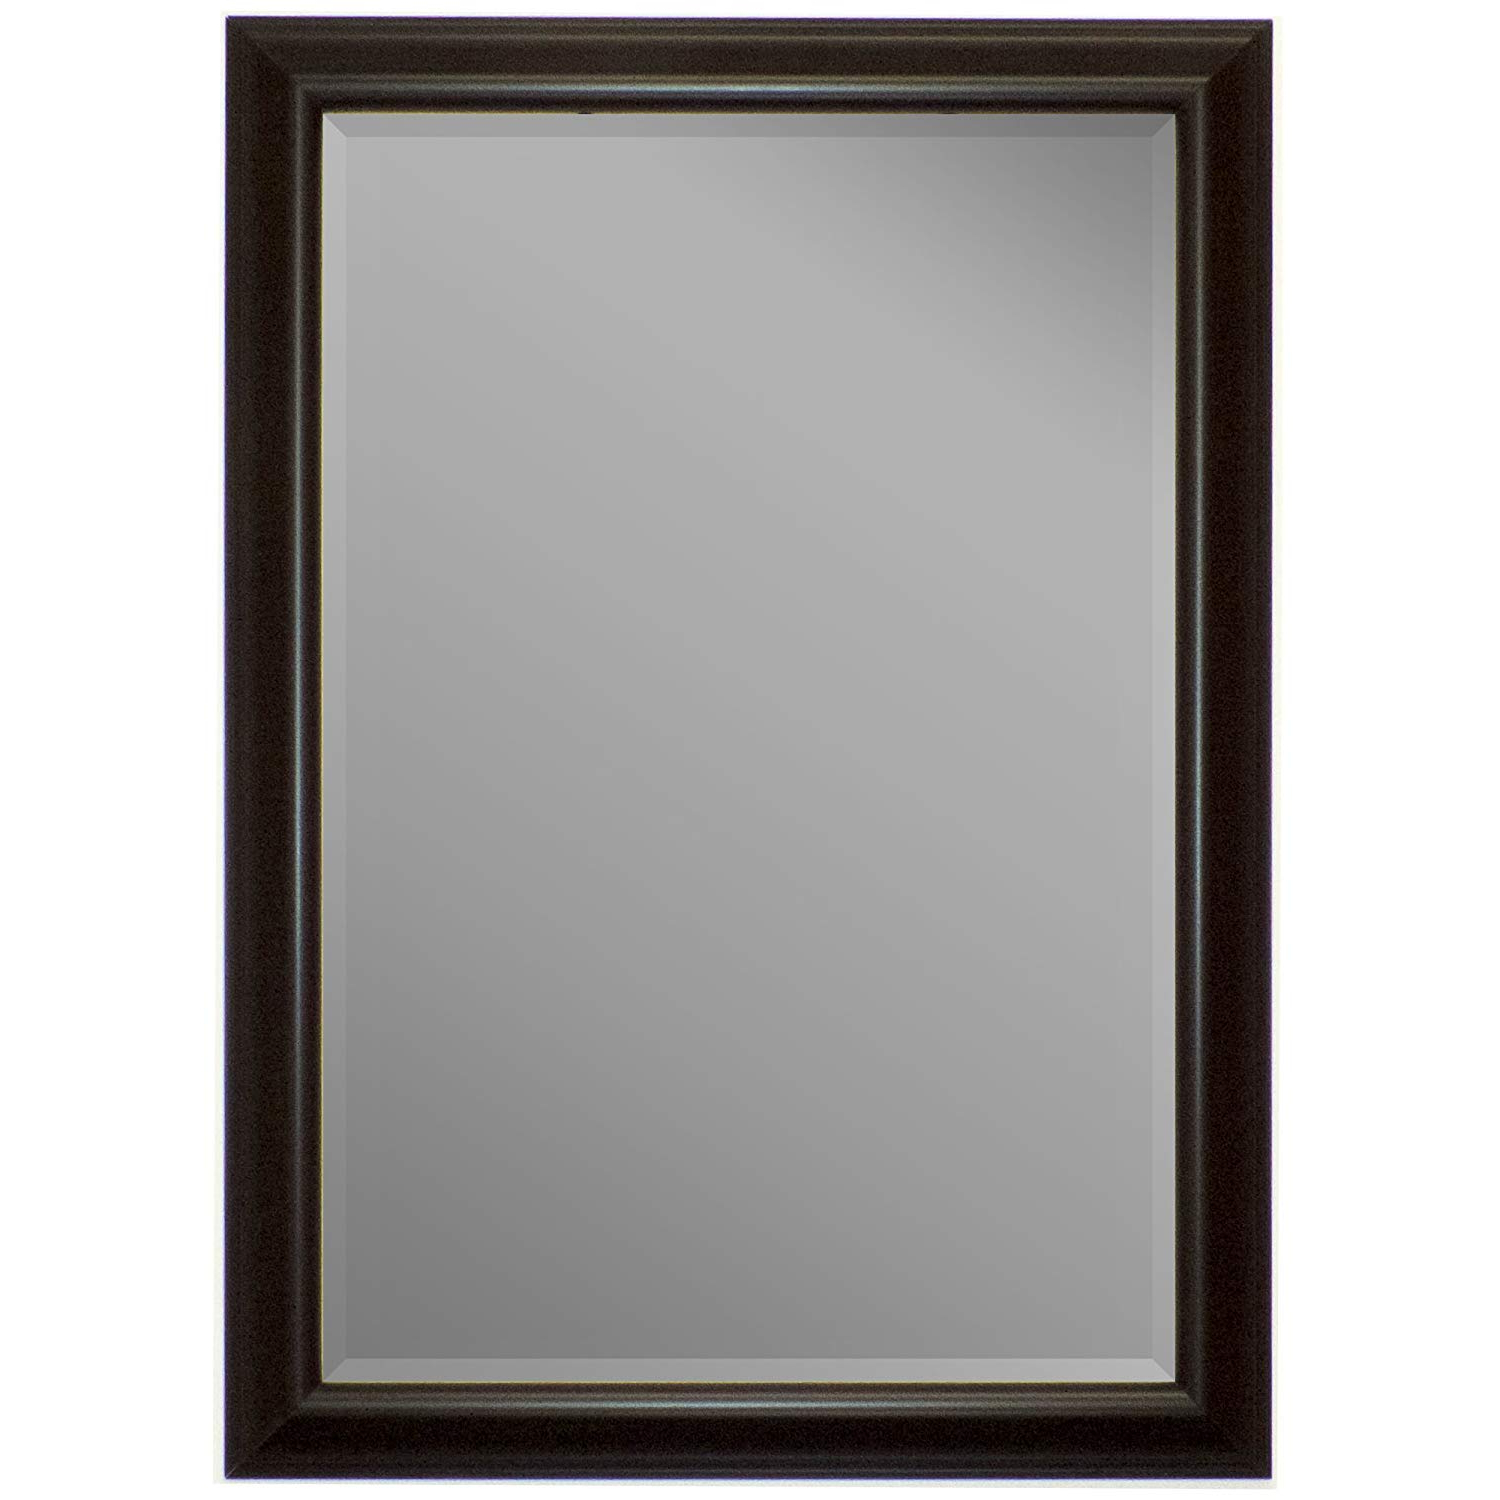 Amazon: Second Look Mirrors Glossy Silver Smoked Black Framed With Newest Black Wall Mirrors (View 11 of 20)